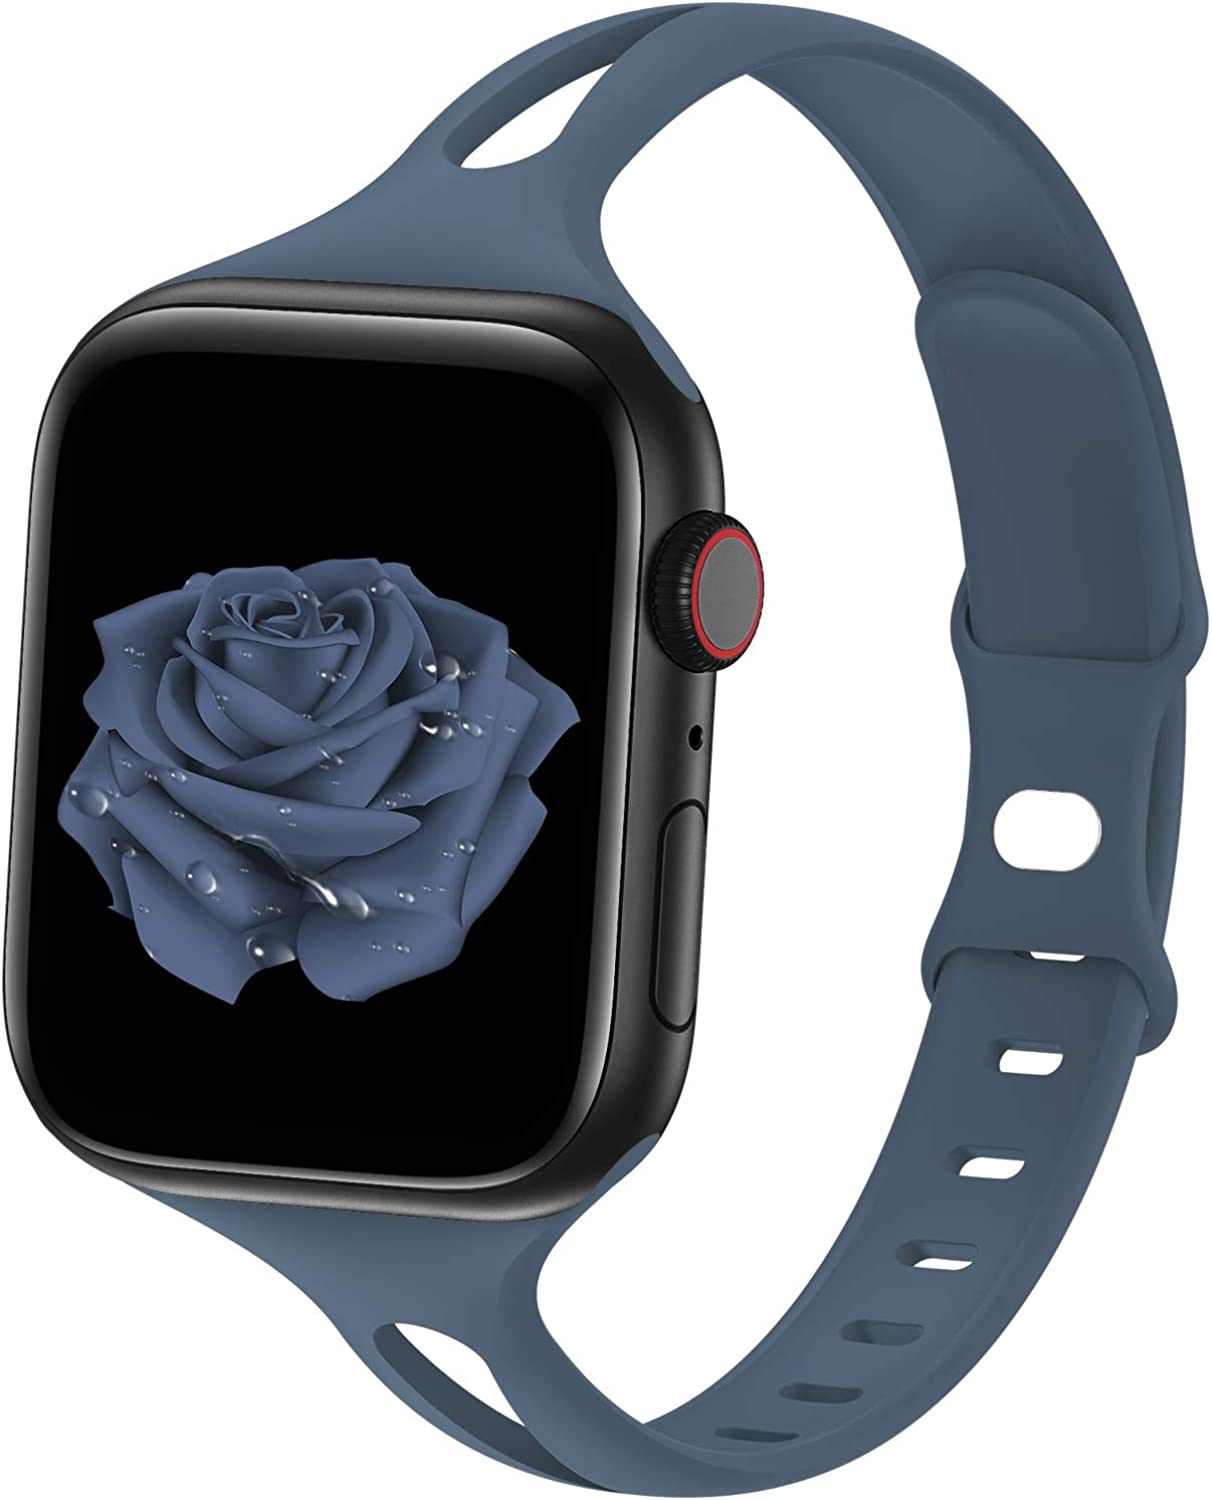 Bagoplus Compatible with Apple Watch Bands 38mm 40mm 42mm 44mm, Breathable Soft Silicone iWatch Bands 38mm 40mm 42mm 44mm Women Men Compatible with iWatch Series 6/5/4/3/2/1/SE